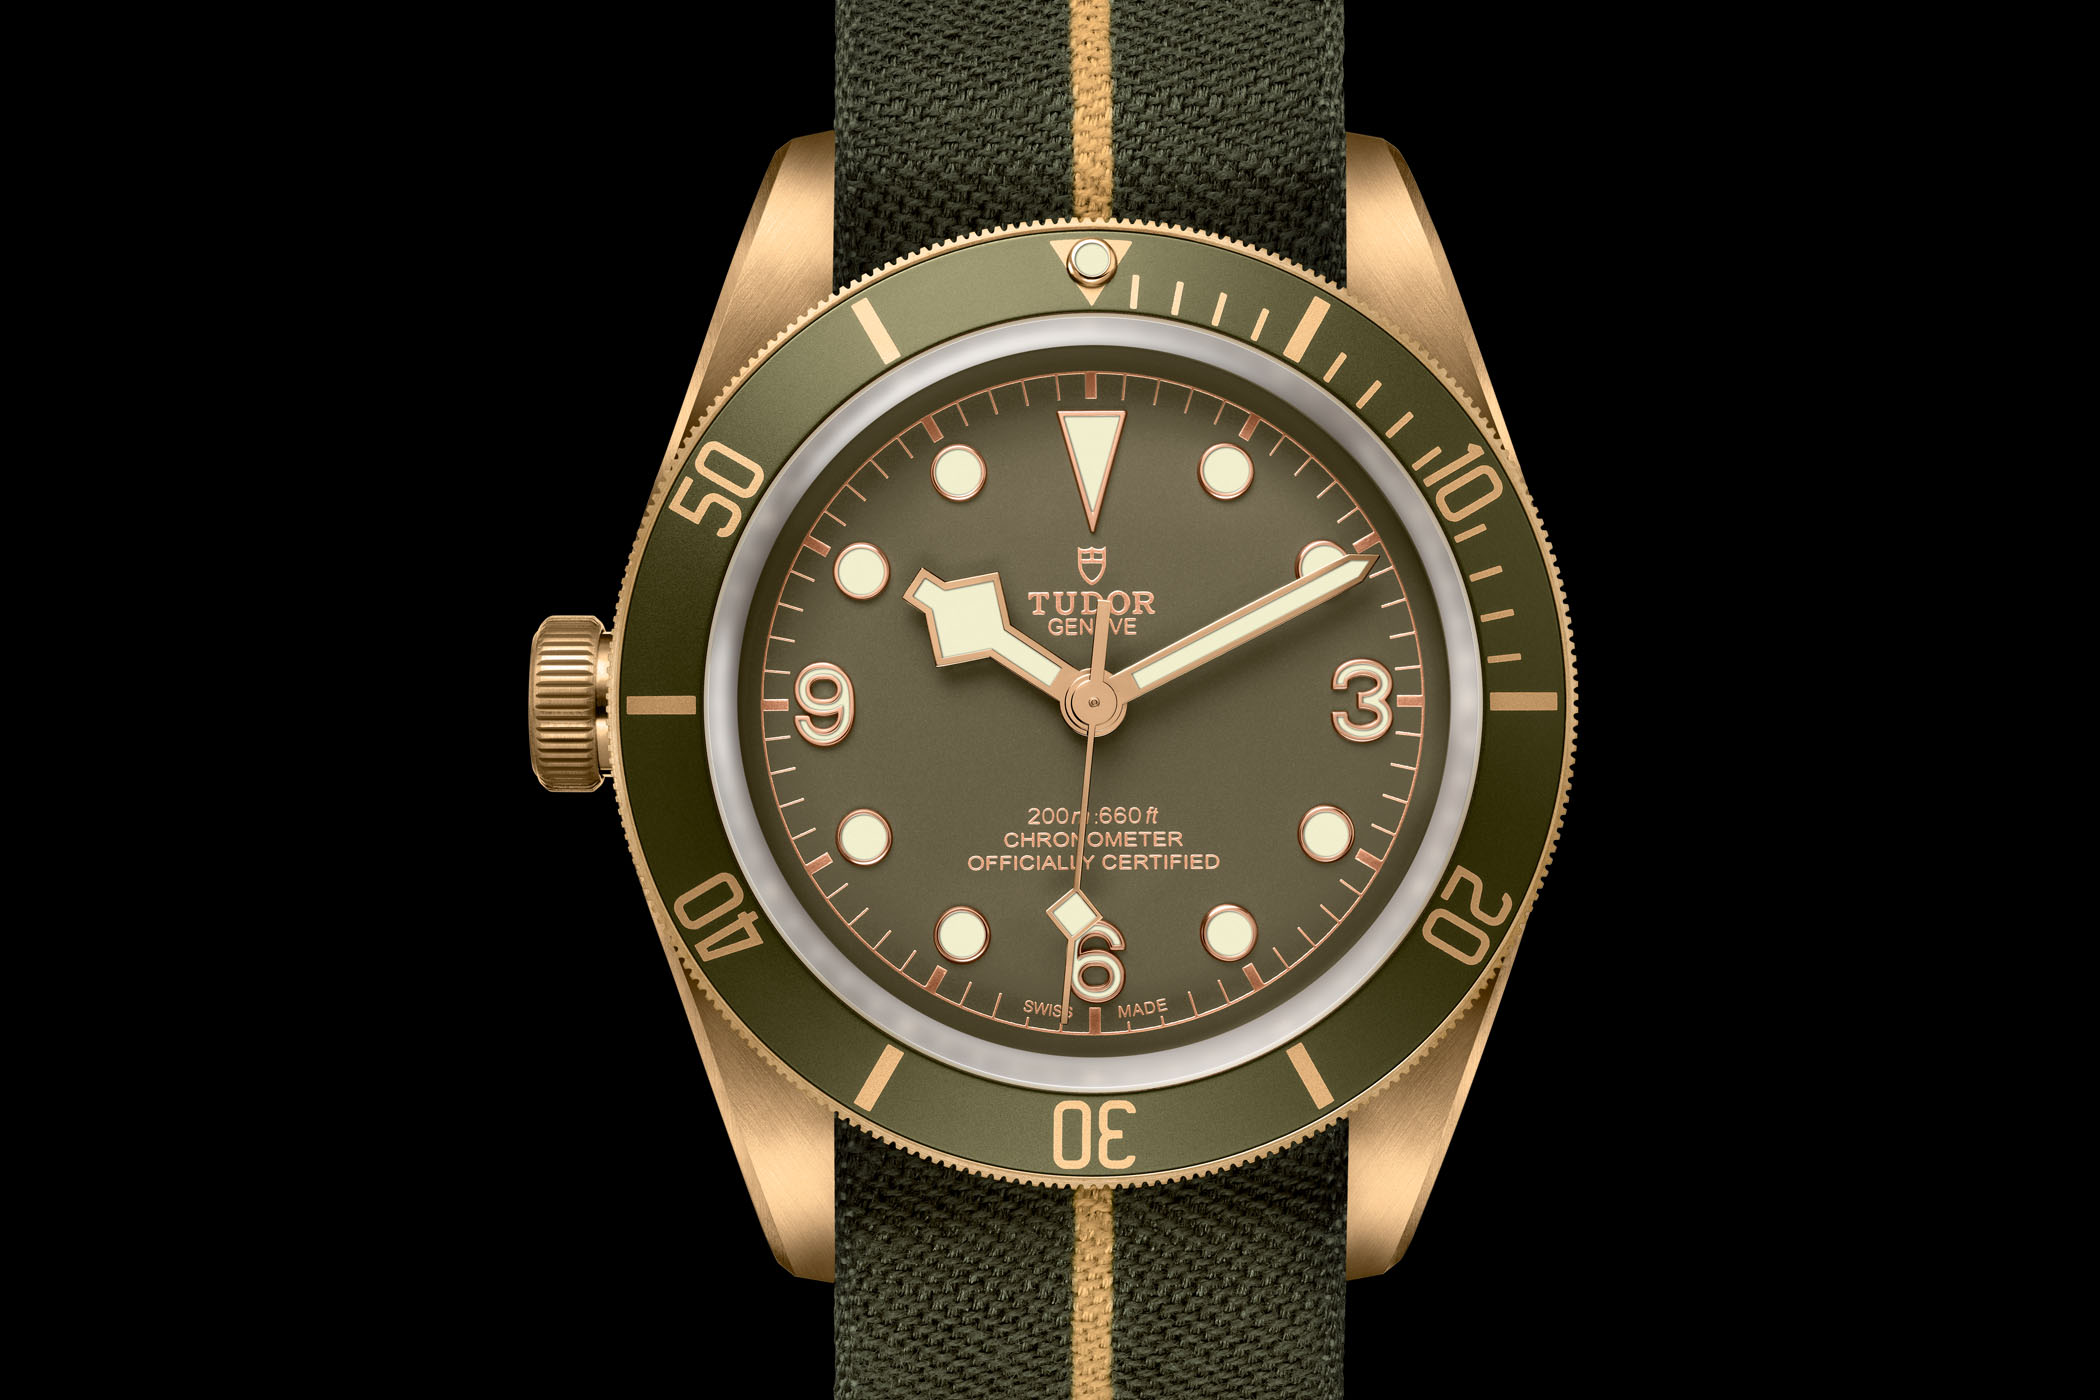 Tudor Black Bay Bronze One LHD khaki green dial - Only Watch 2017